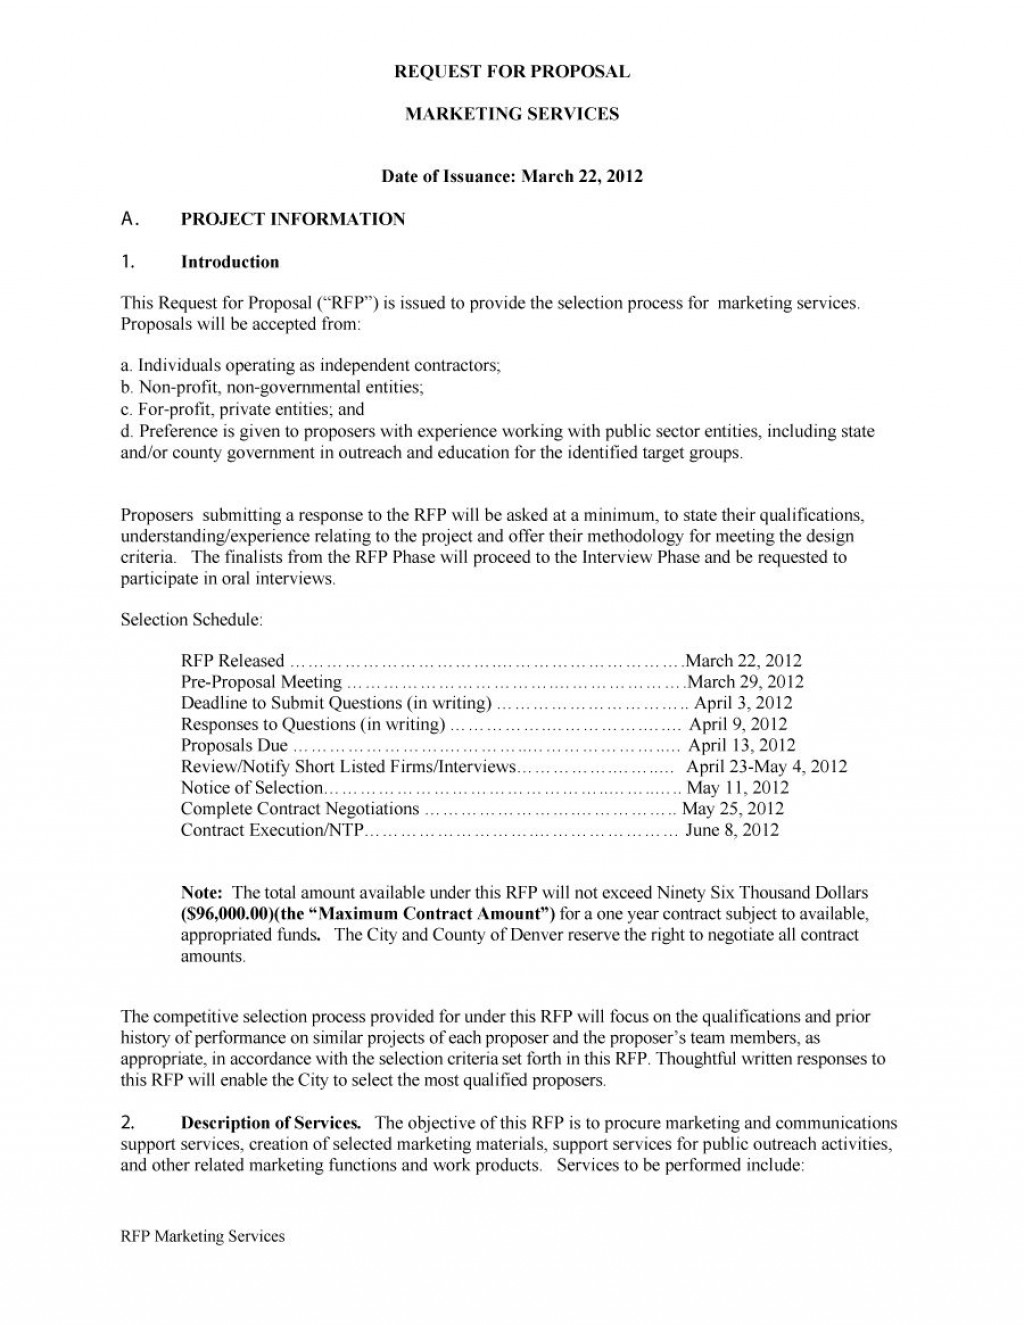 007 Marvelou Request For Proposal Template Construction Image  Rfp ResidentialLarge